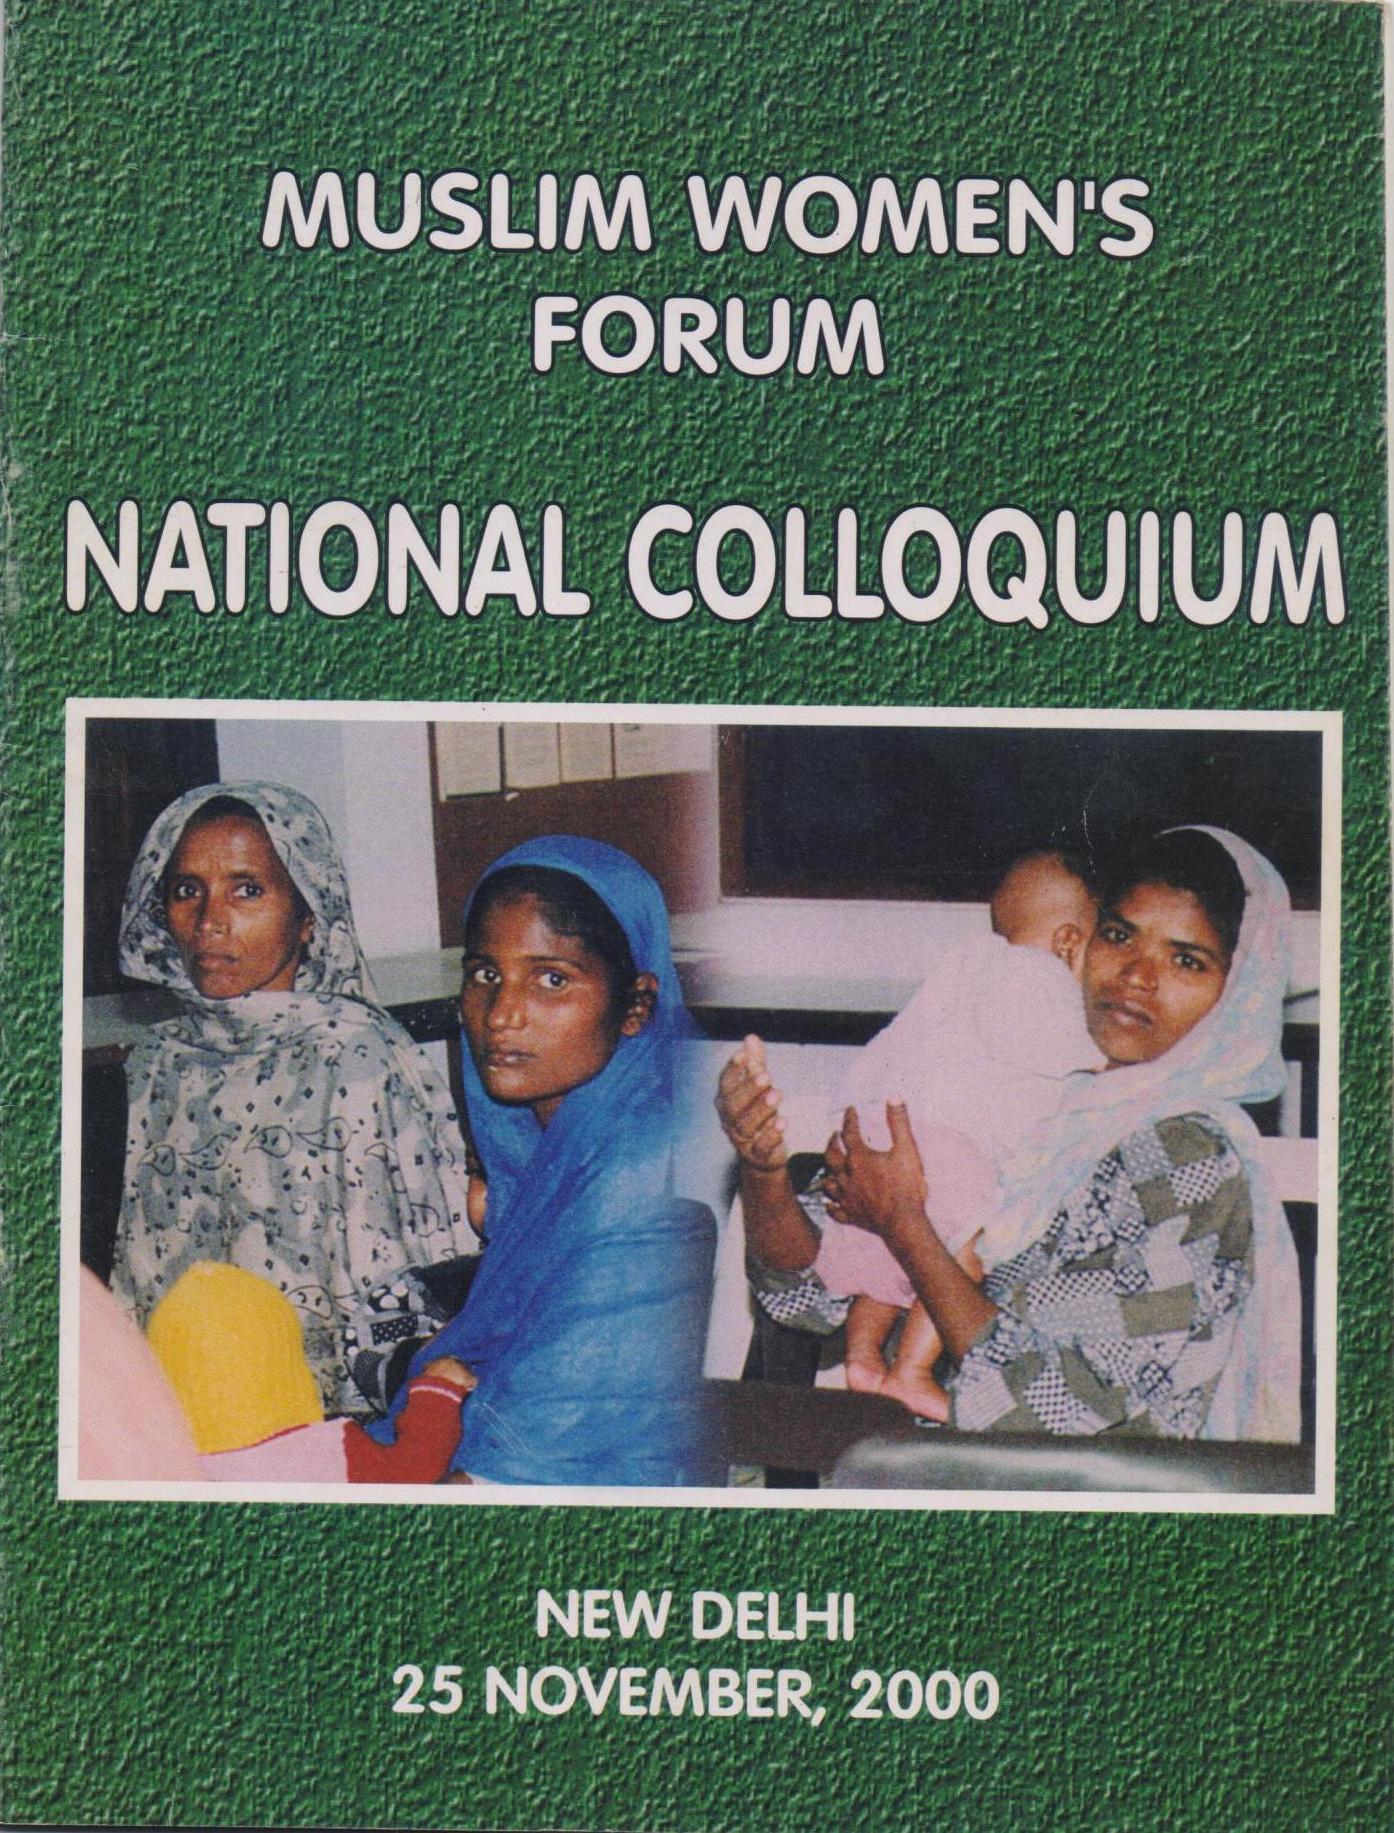 National Colloquium on Muslim Women's Rights